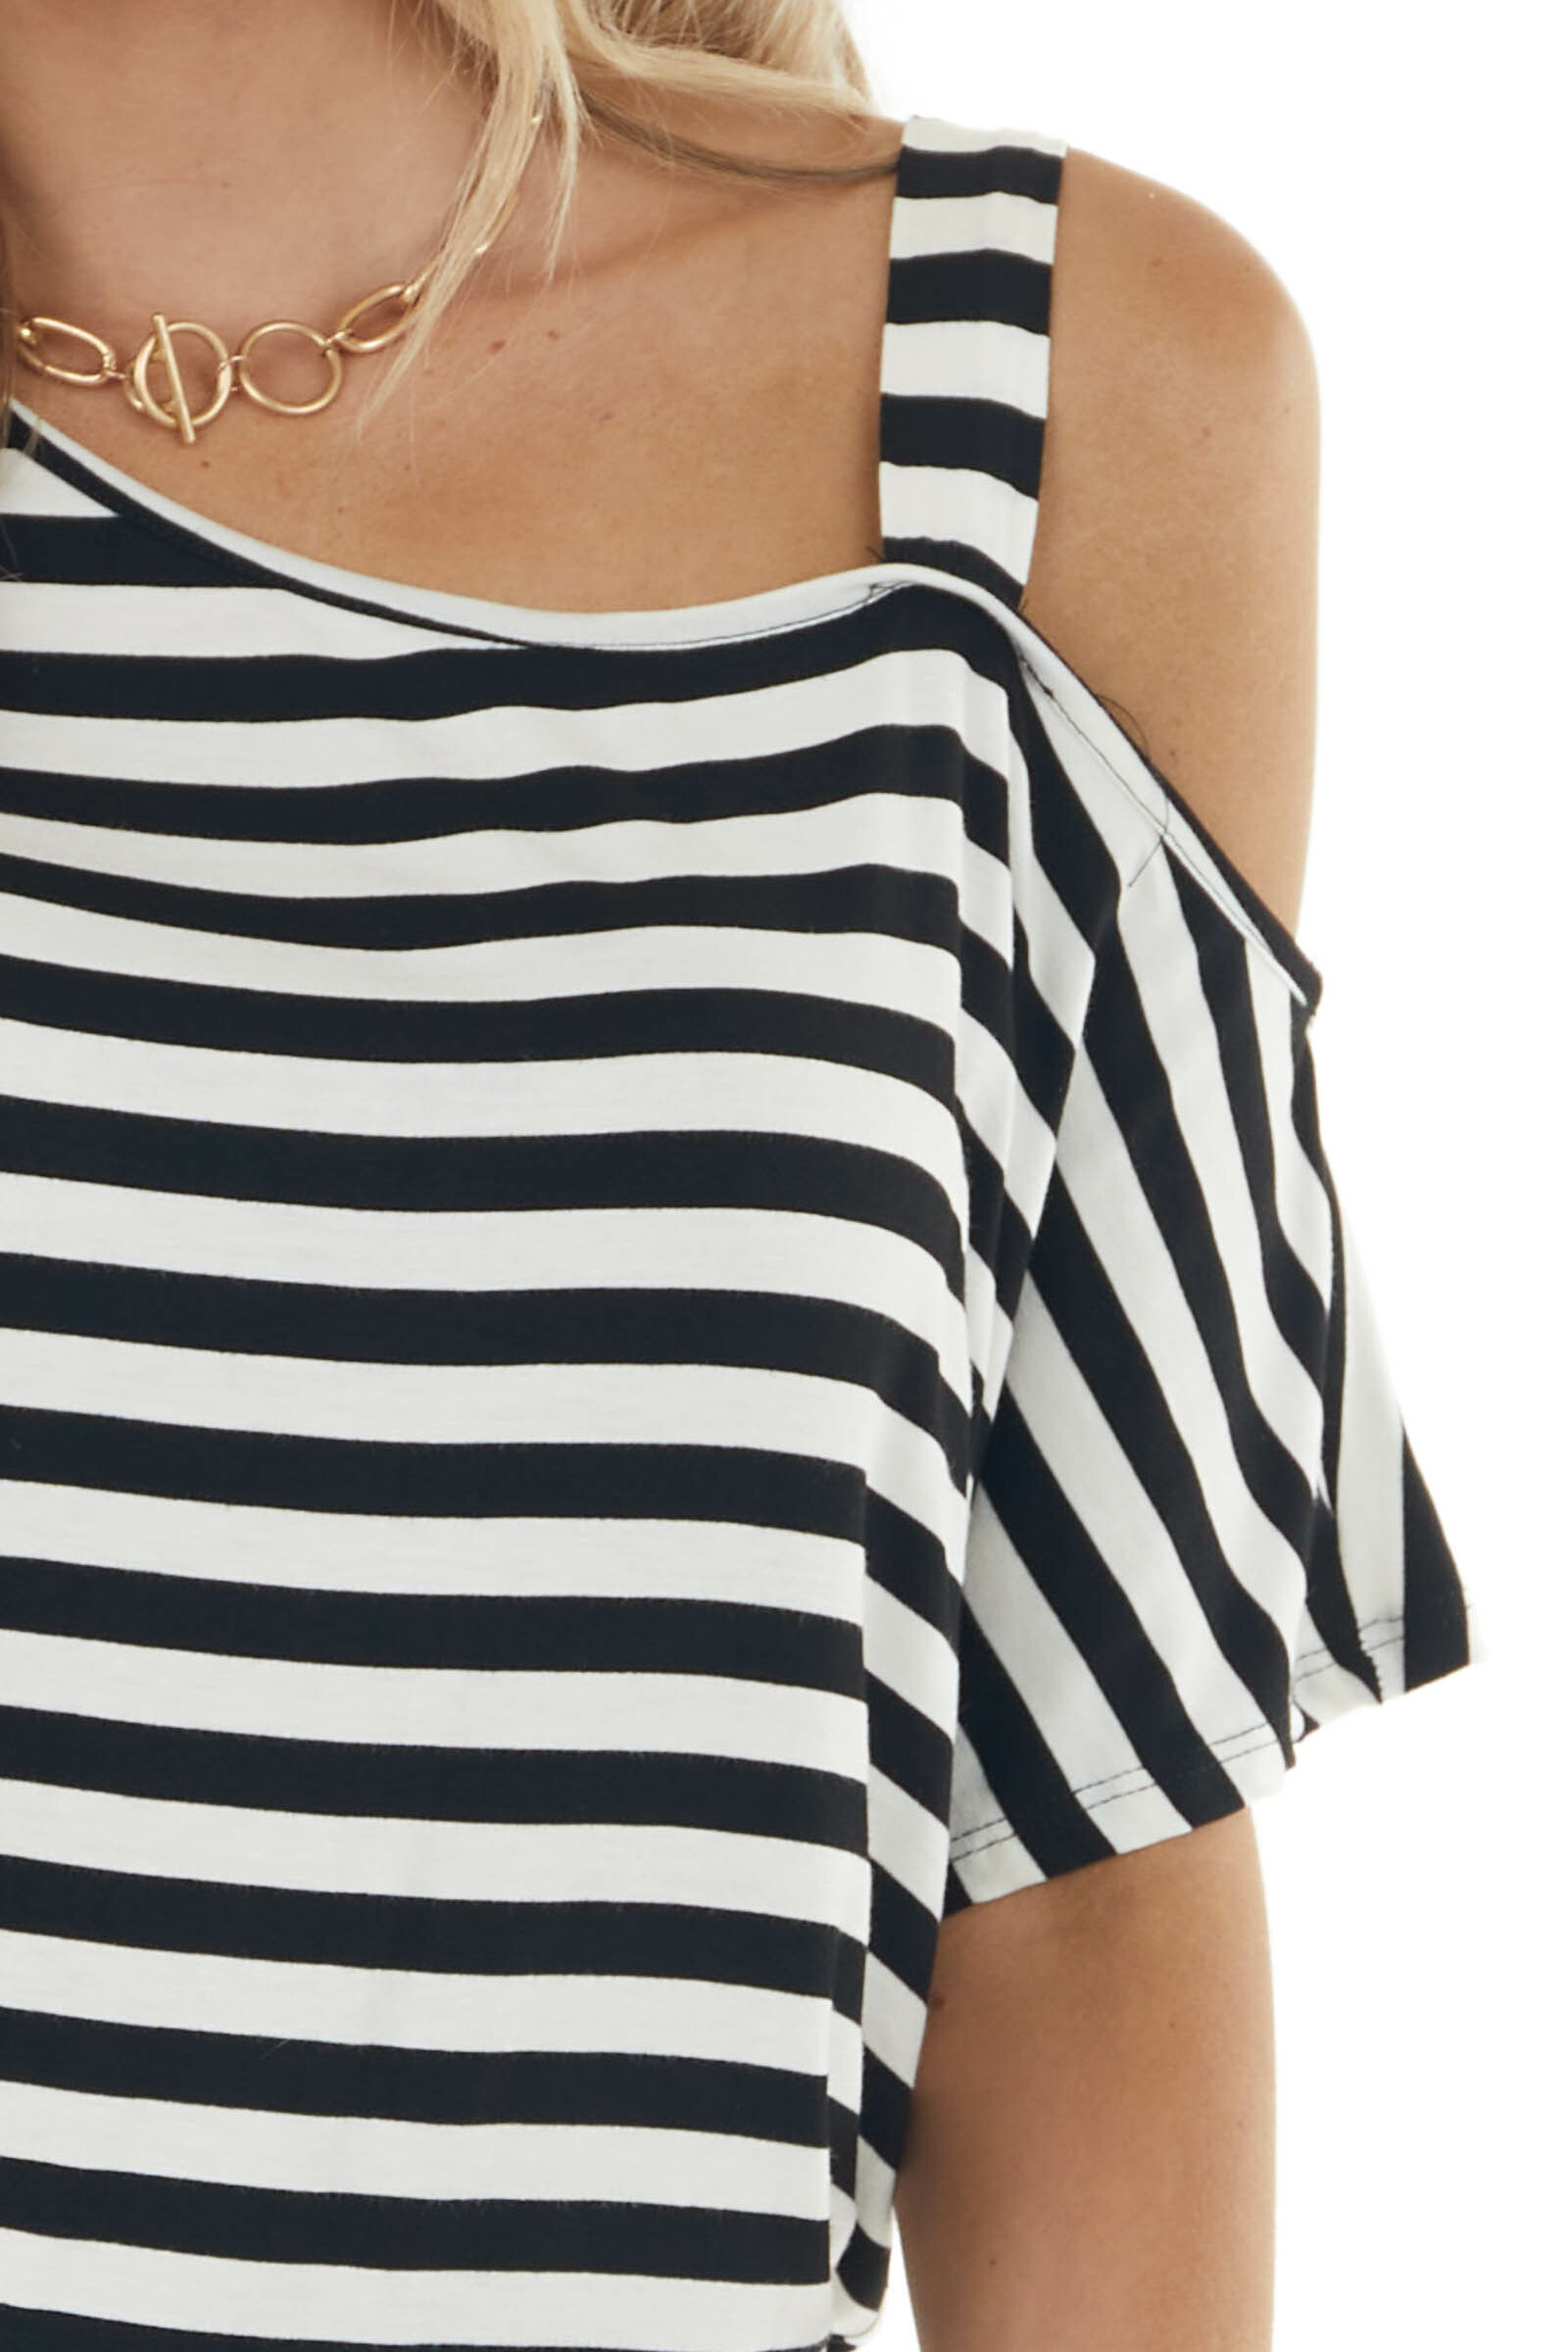 Black and Ivory Striped One Cold Shoulder Knit Top with Tie